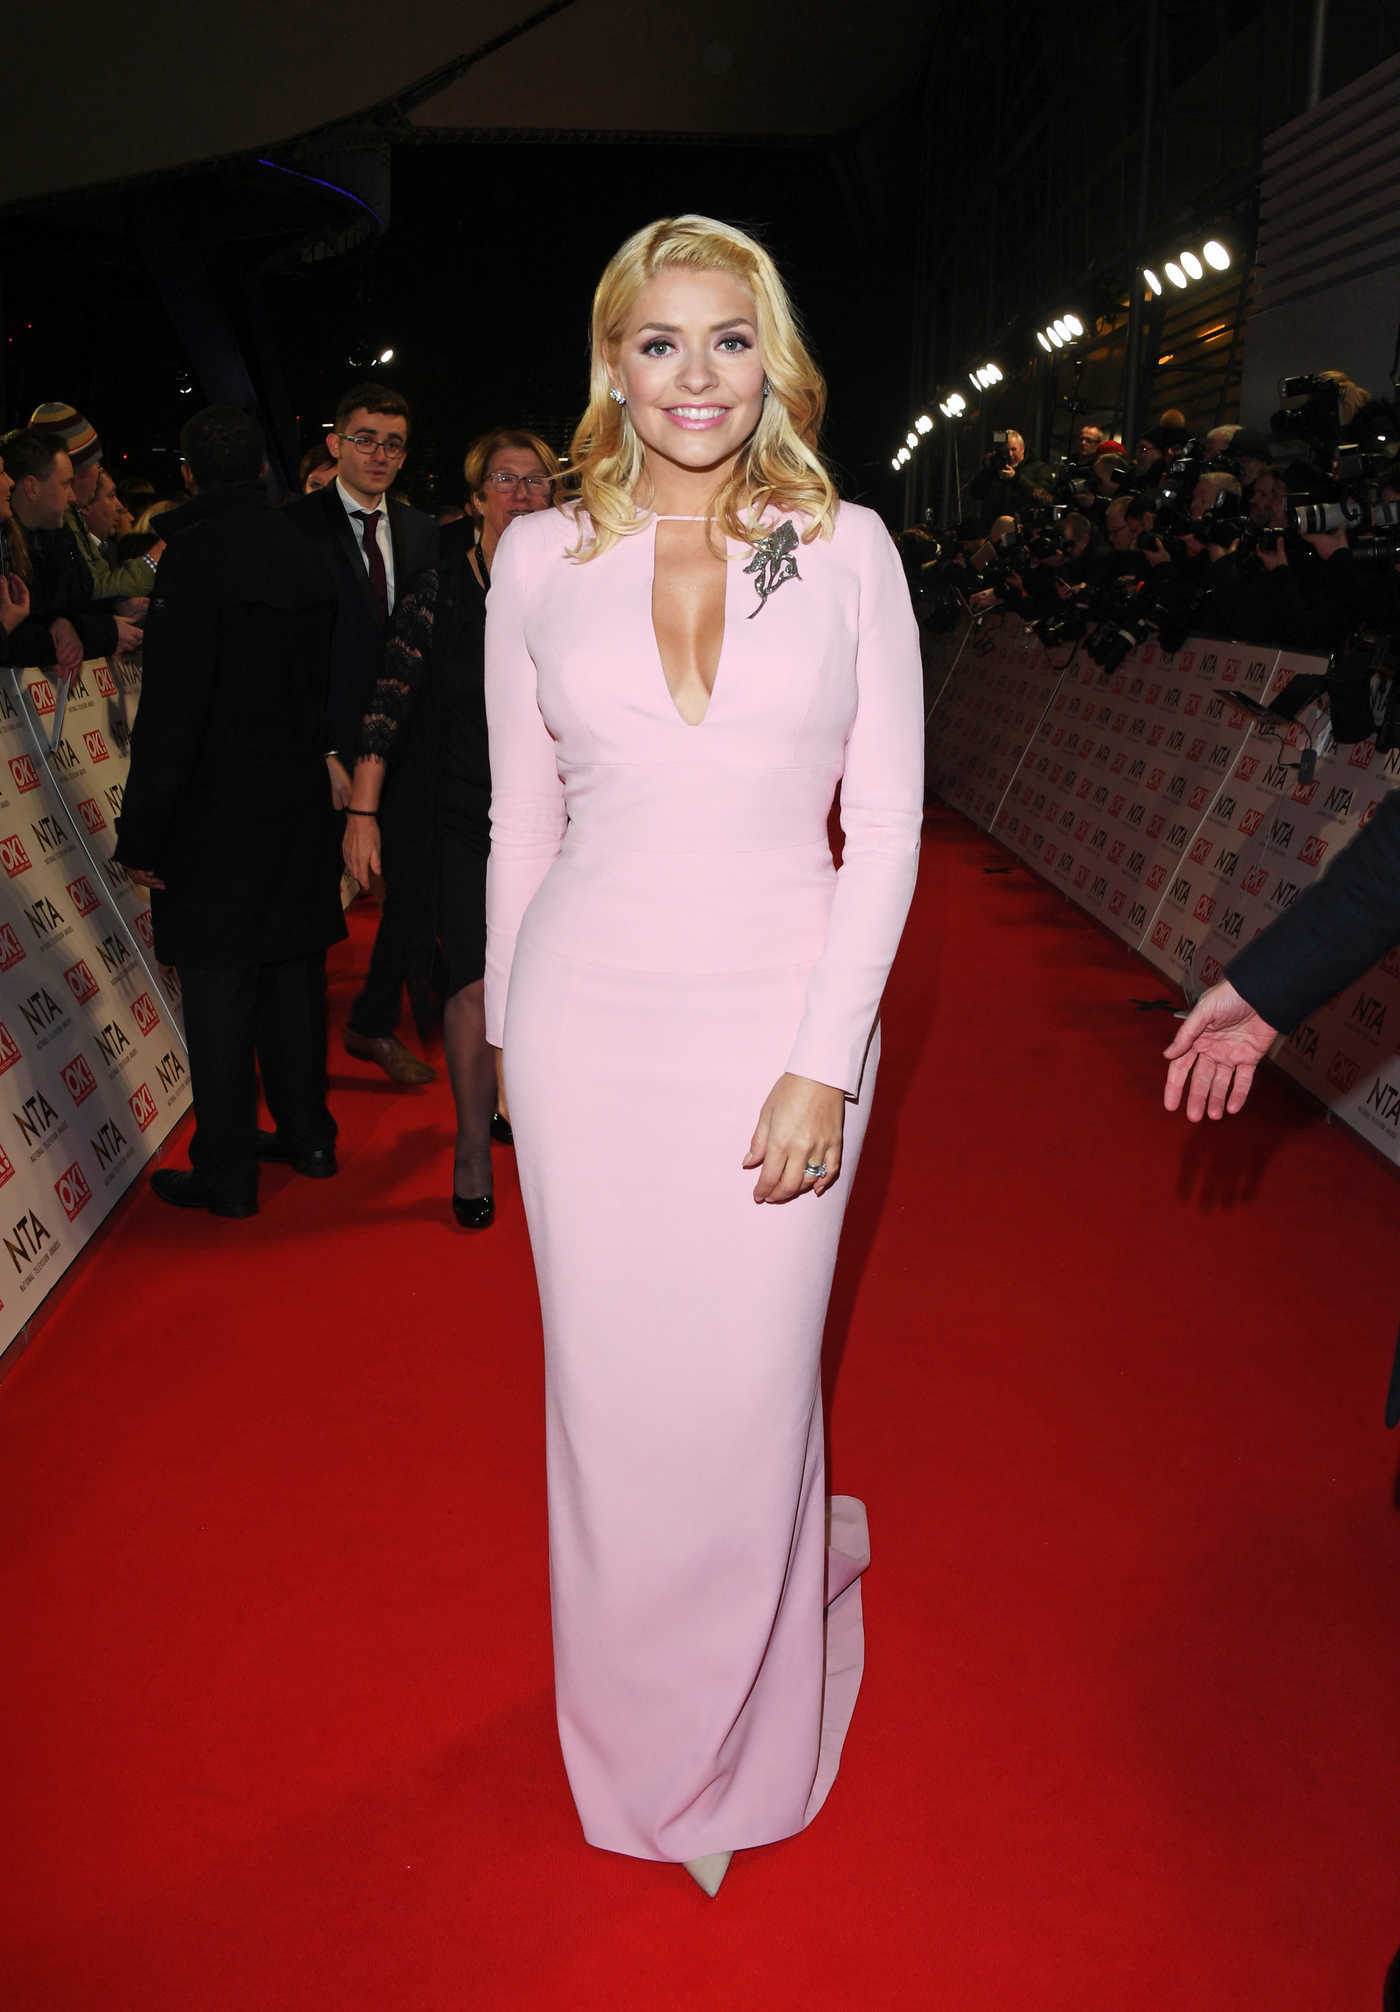 Holly Willoughby at the National Television Awards in London 01/25/2017